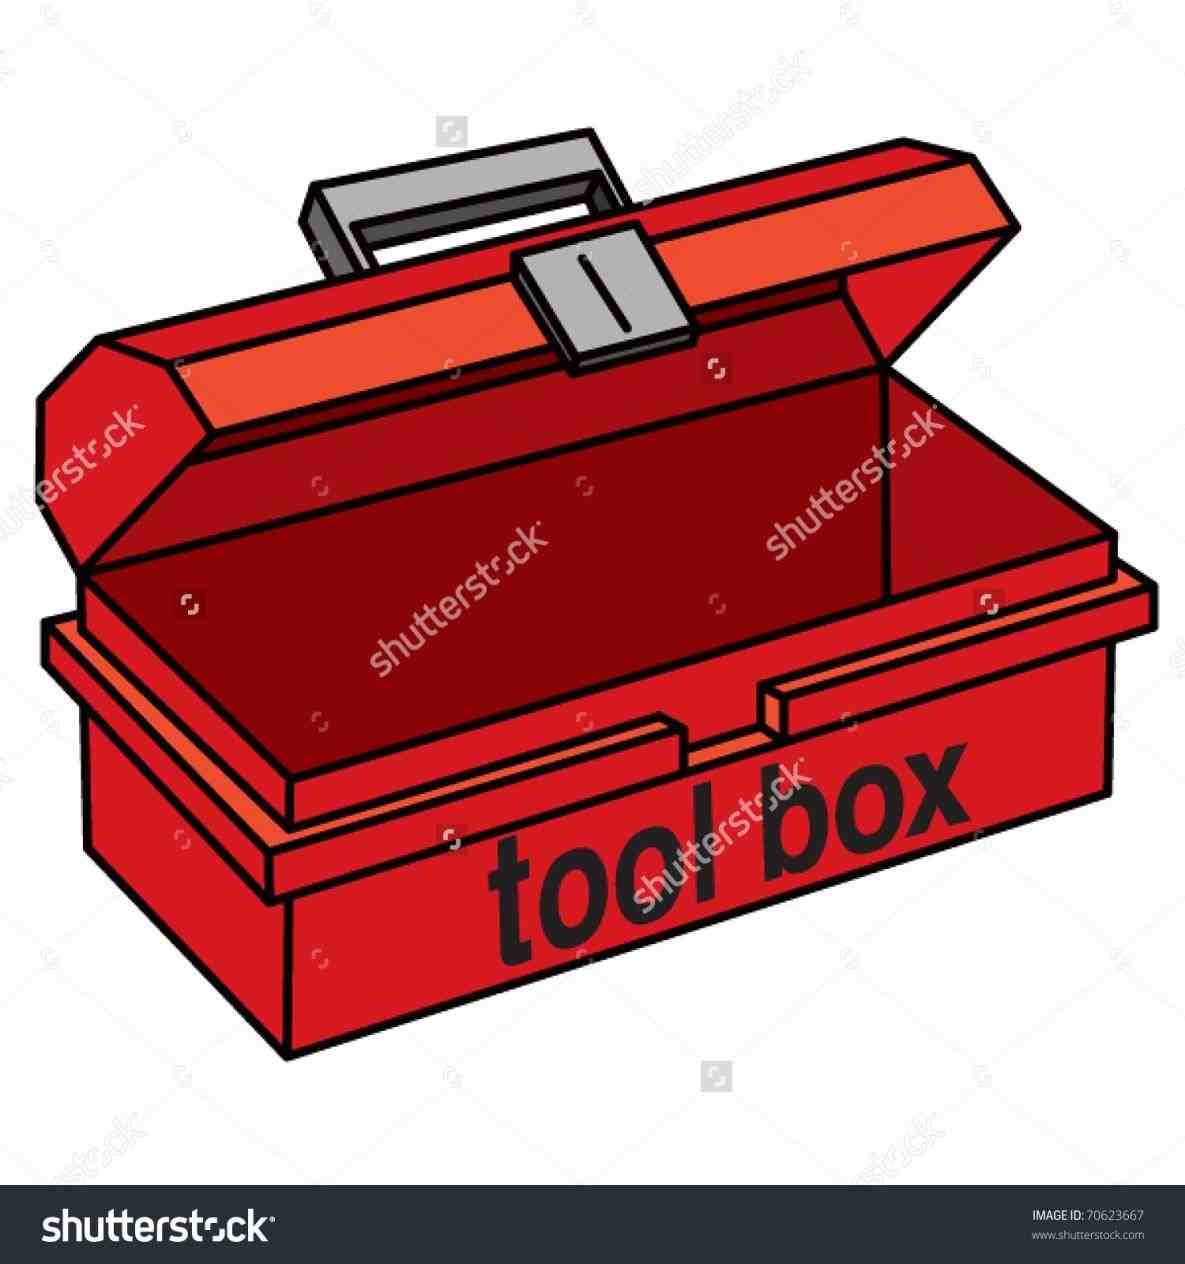 Clip open tool box clip art art toolboxrhfiveclipartcom for big red tool  boxes clipartrhlaobloggercom art open